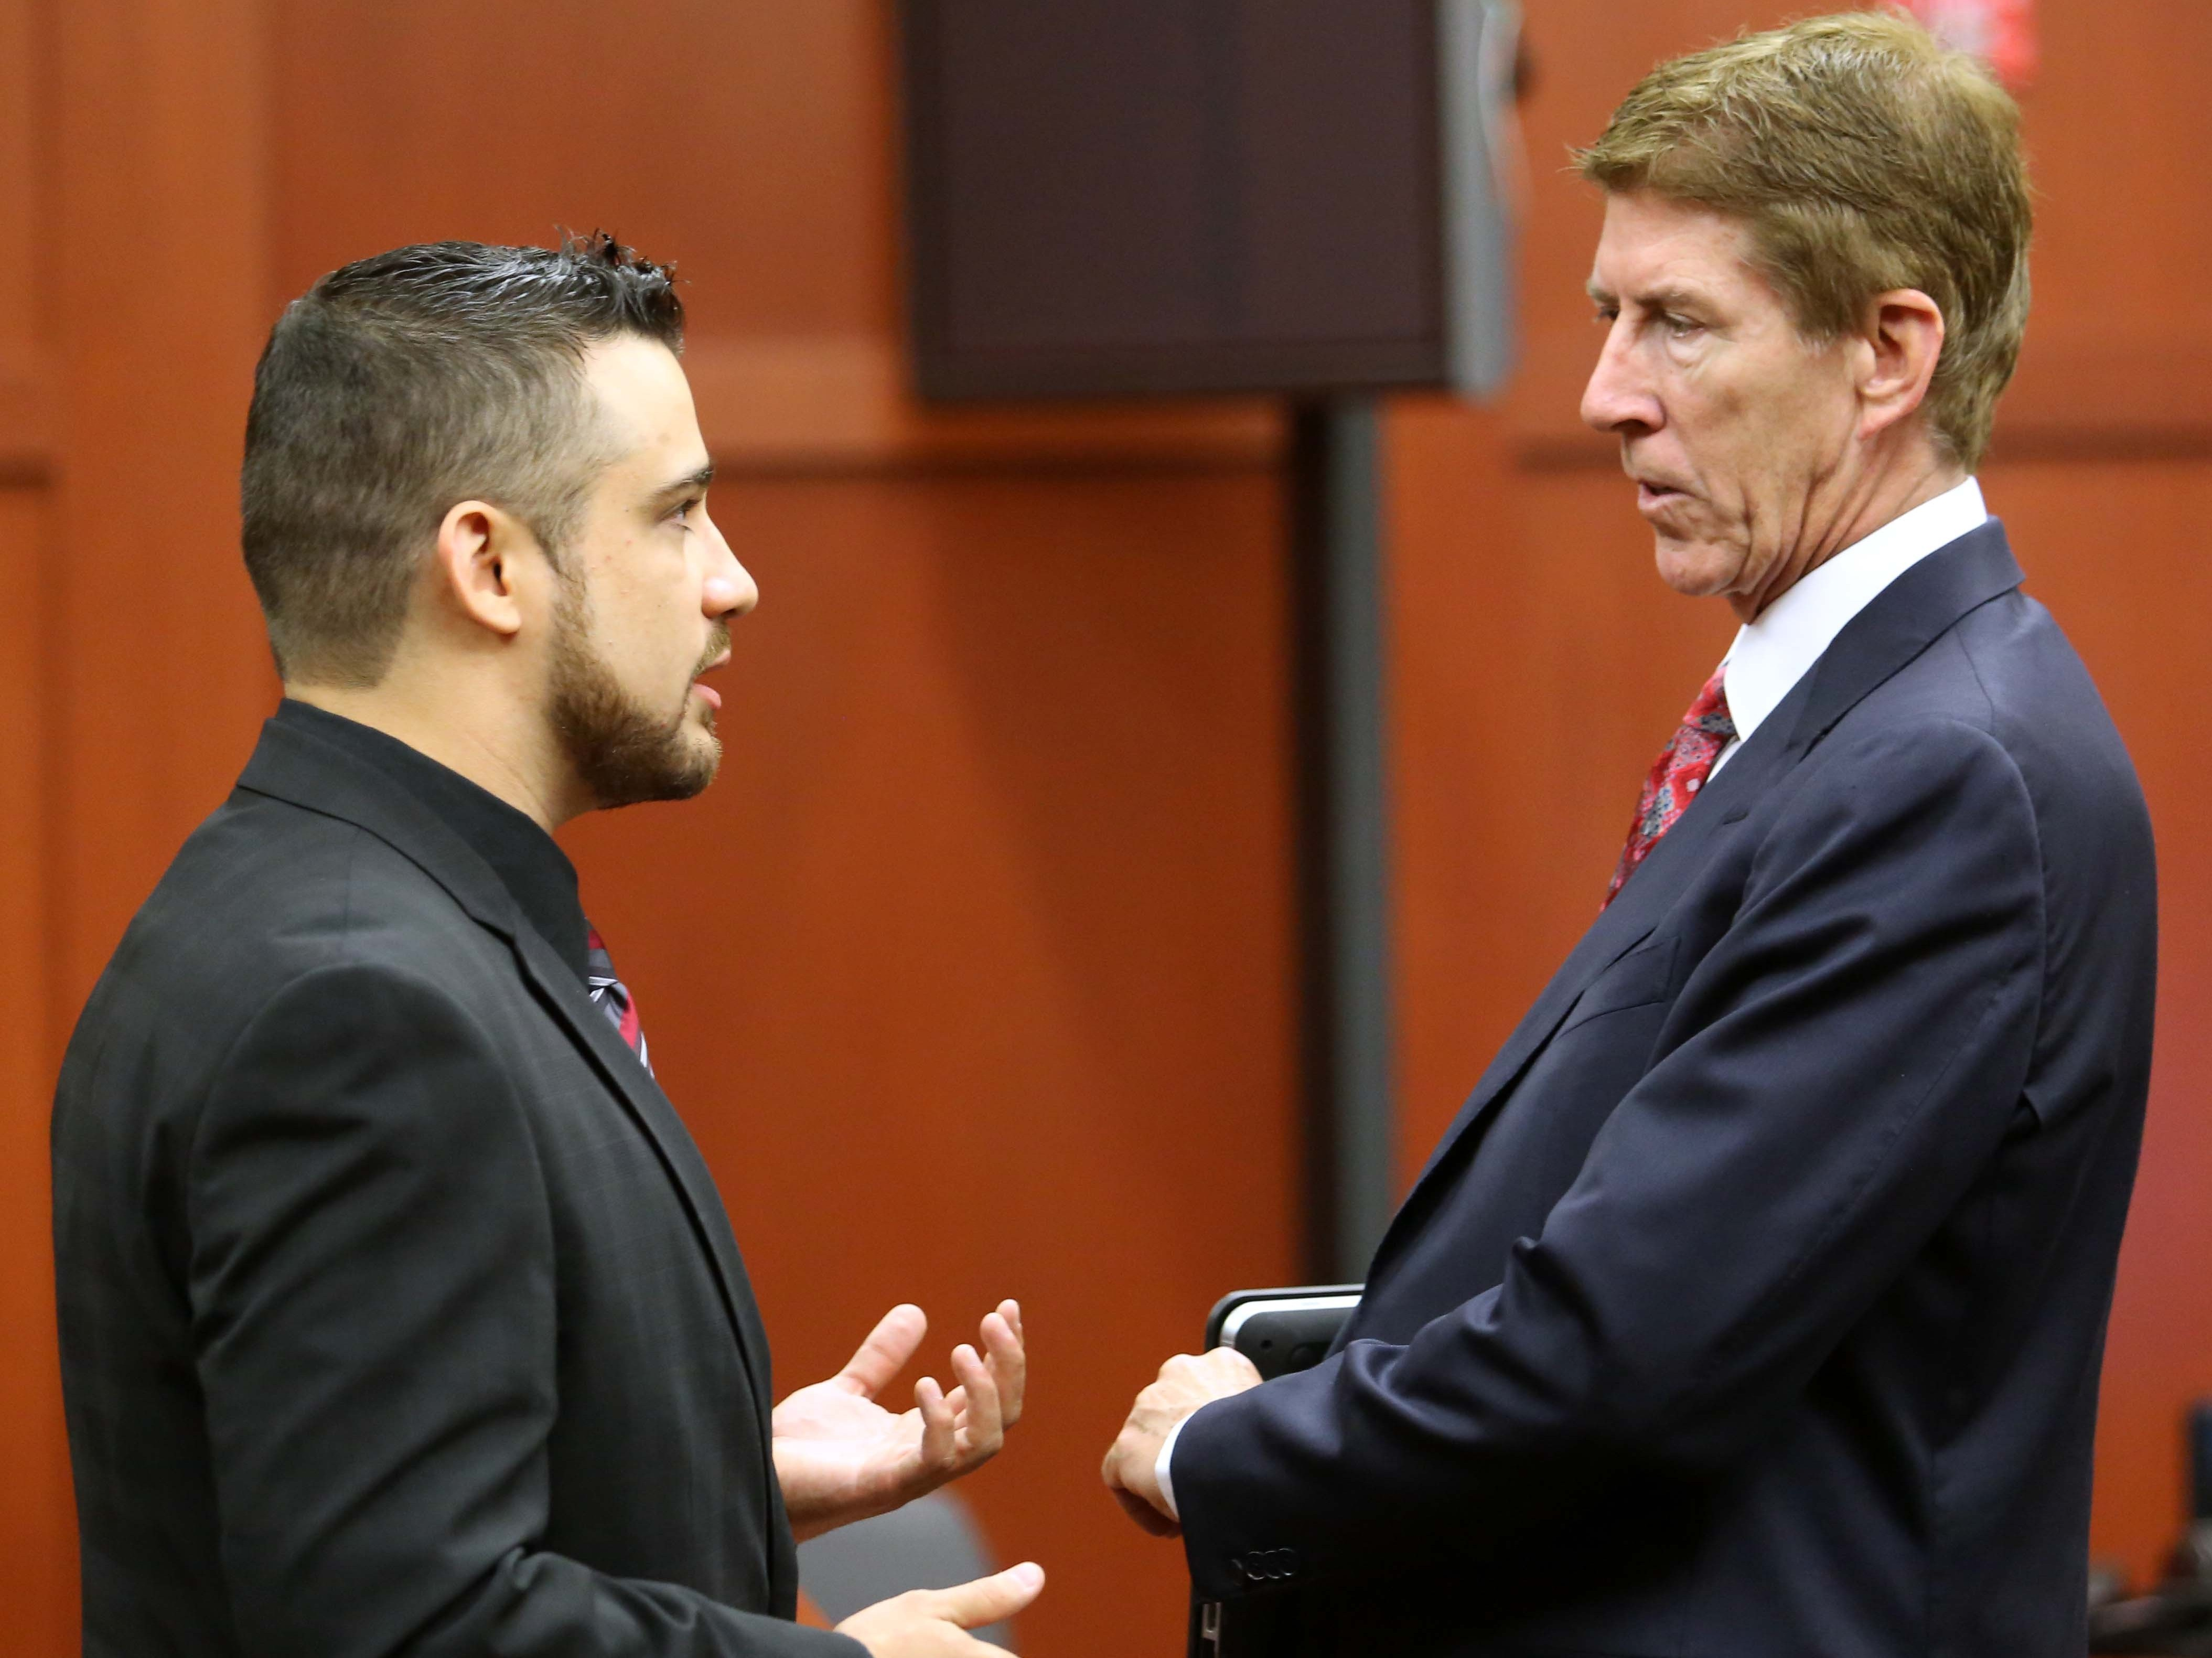 Zimmerman's Brother: Race 'Wasn't An Element In This Case'